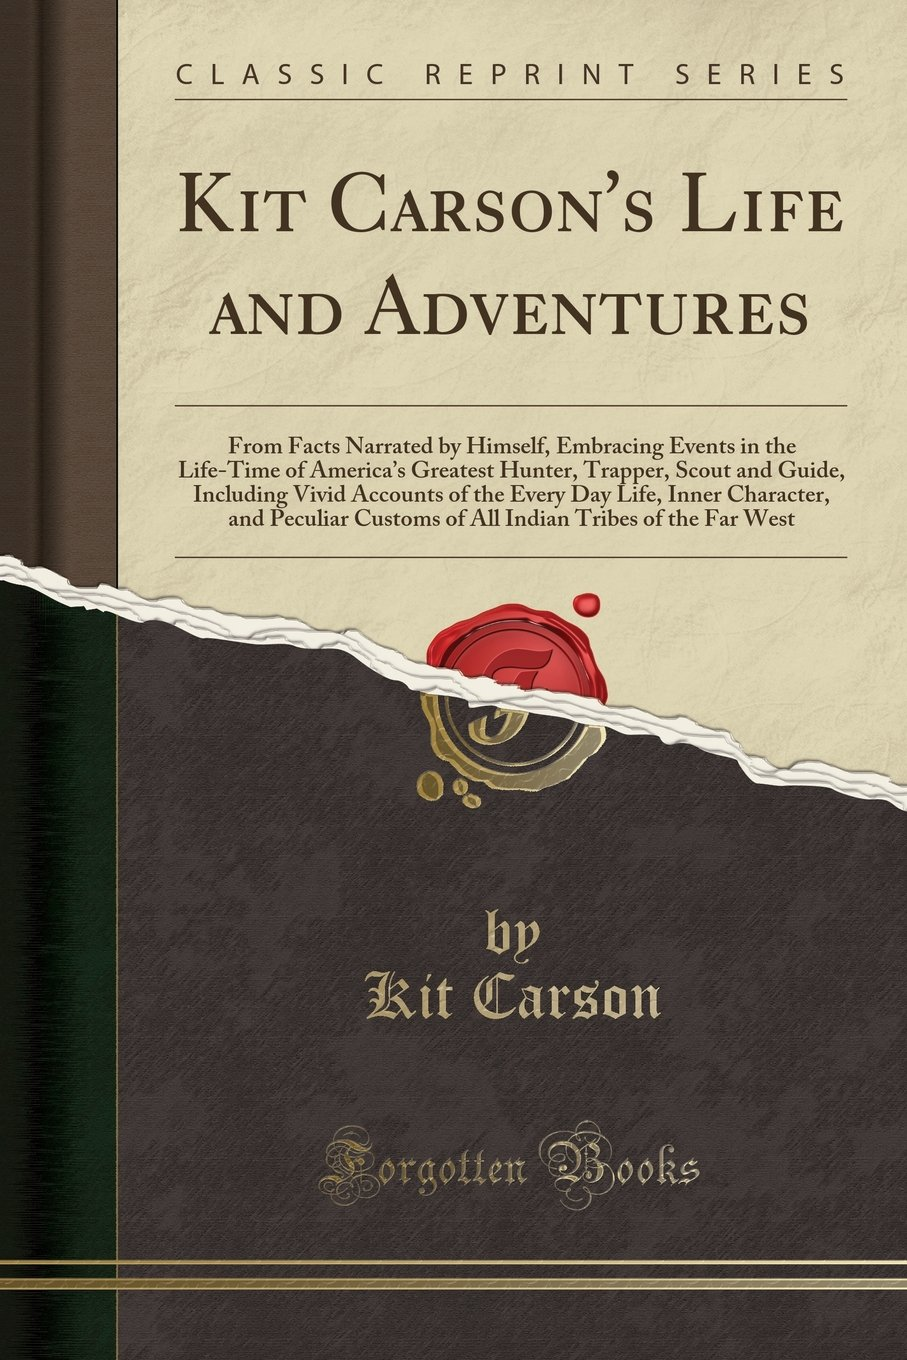 Download Kit Carson's Life and Adventures: From Facts Narrated by Himself, Embracing Events in the Life-Time of America's Greatest Hunter, Trapper, Scout and ... Character, and Peculiar Customs of All Indi pdf